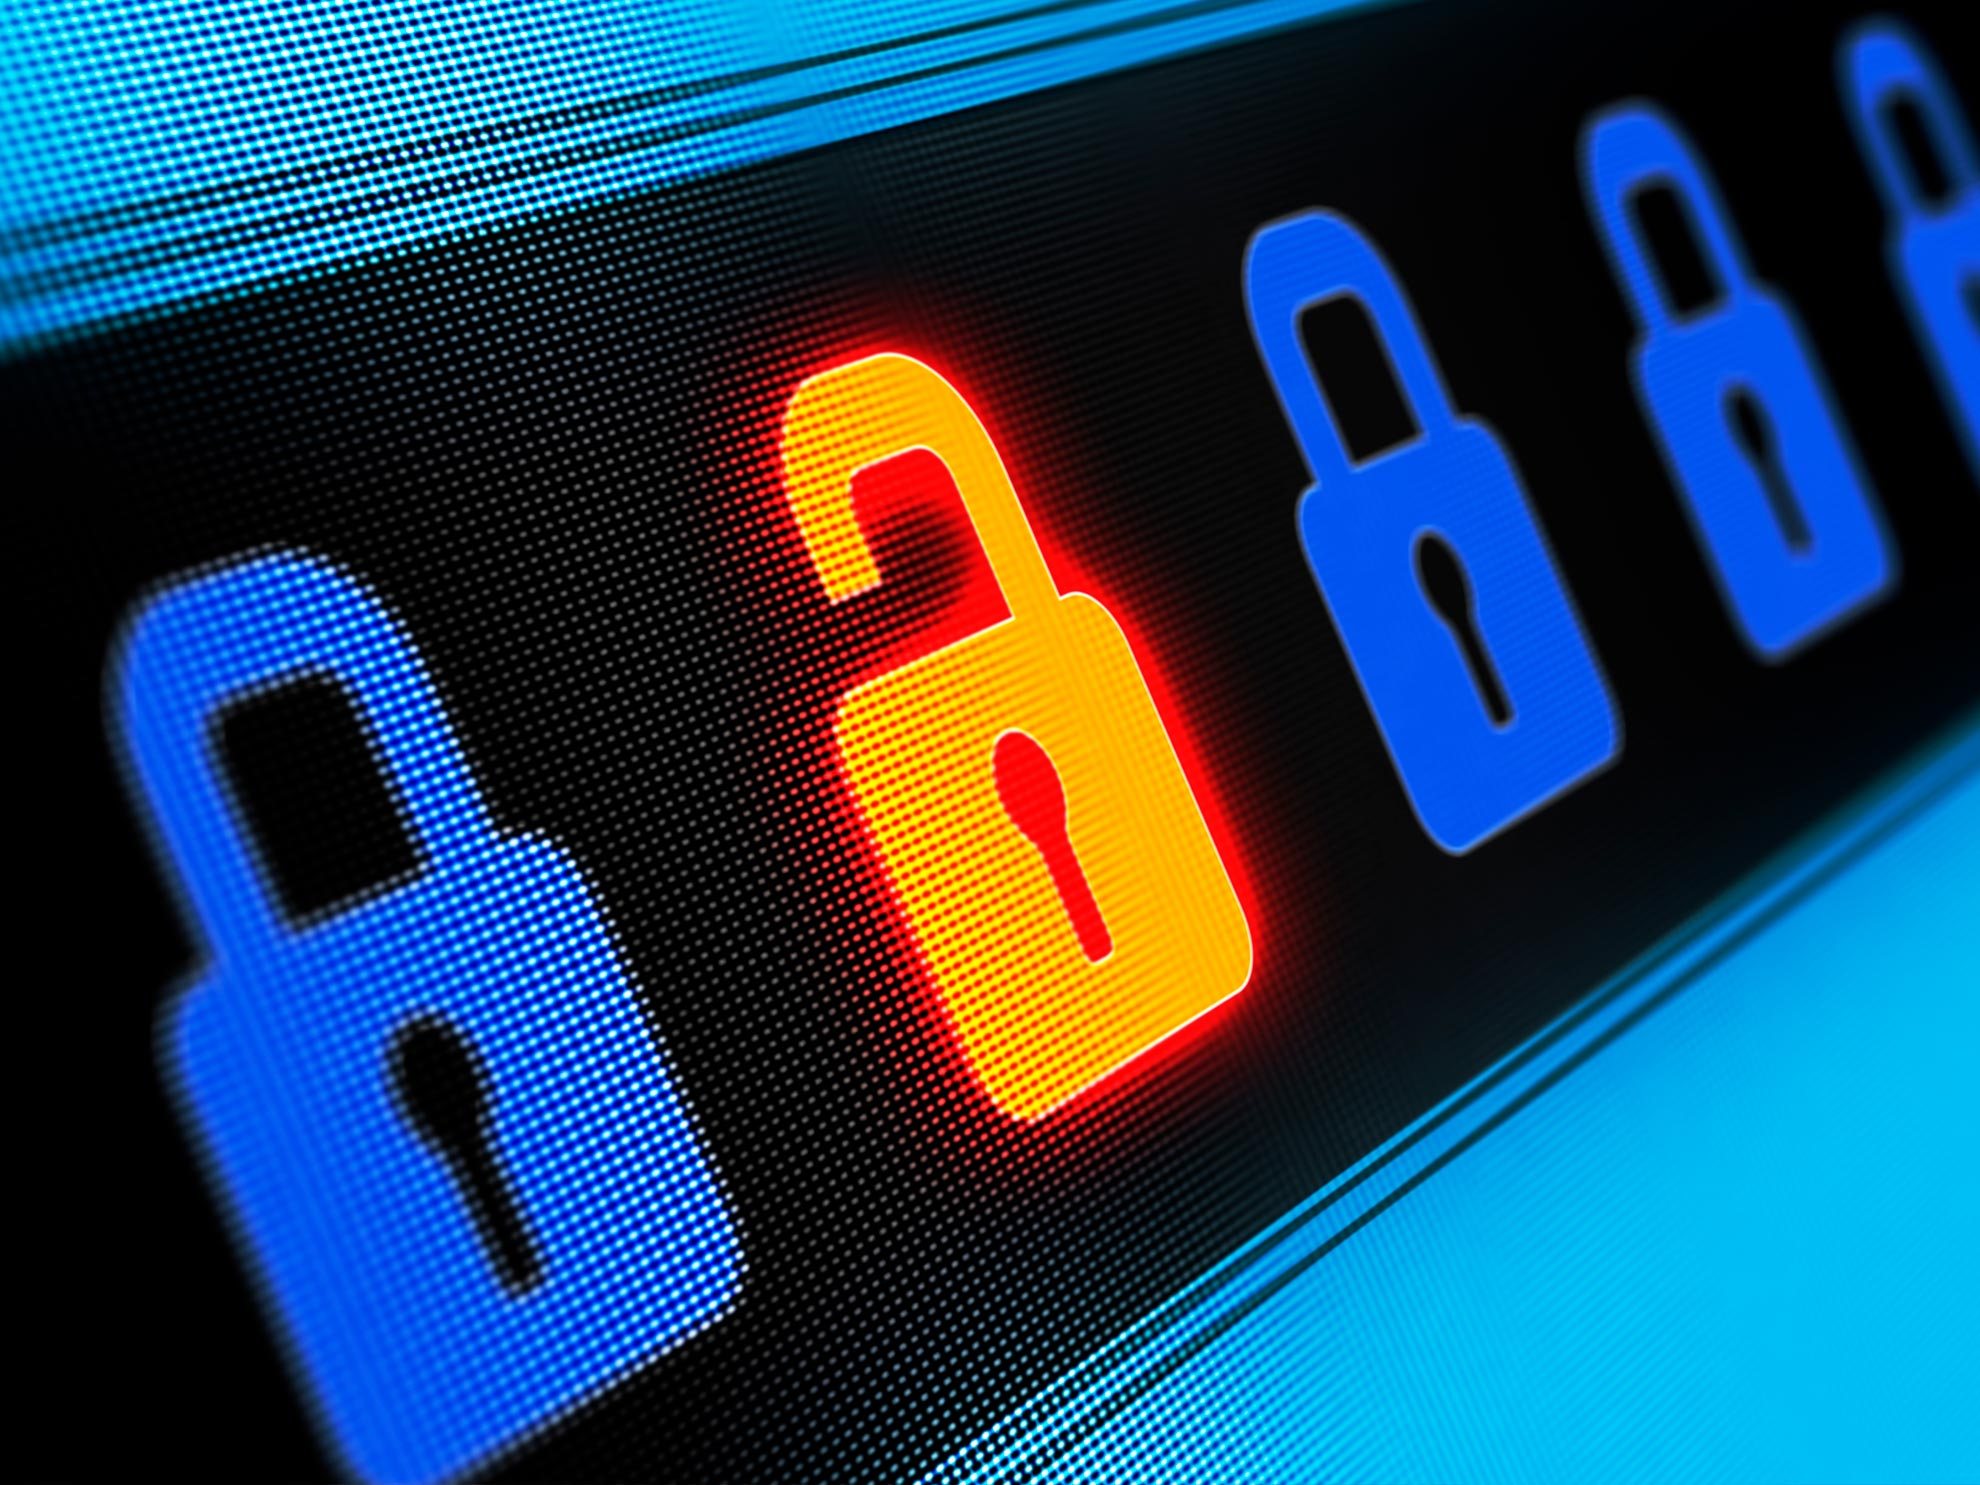 tendenze cyber security 2018